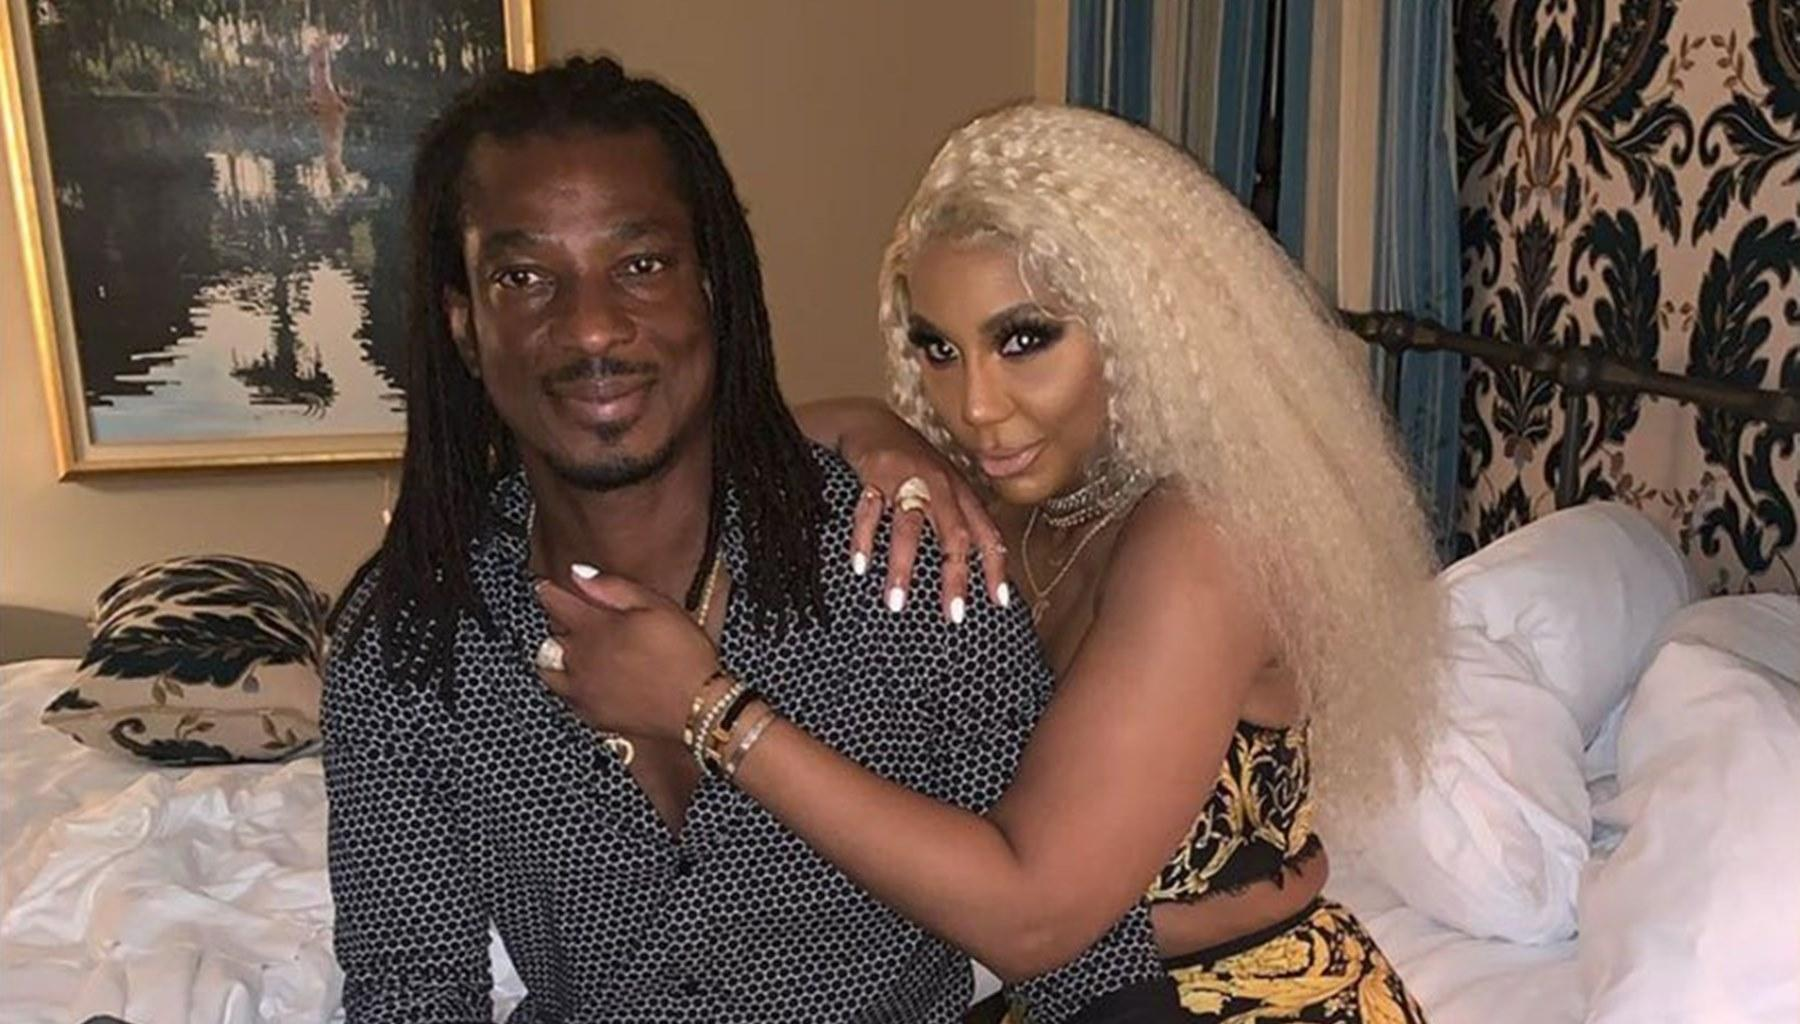 Tamar Braxton's Boyfriend, David Adefesso, Is Being Dragged Amid Break-Up Rumors -- Fans Expect Some Big News From The Couple